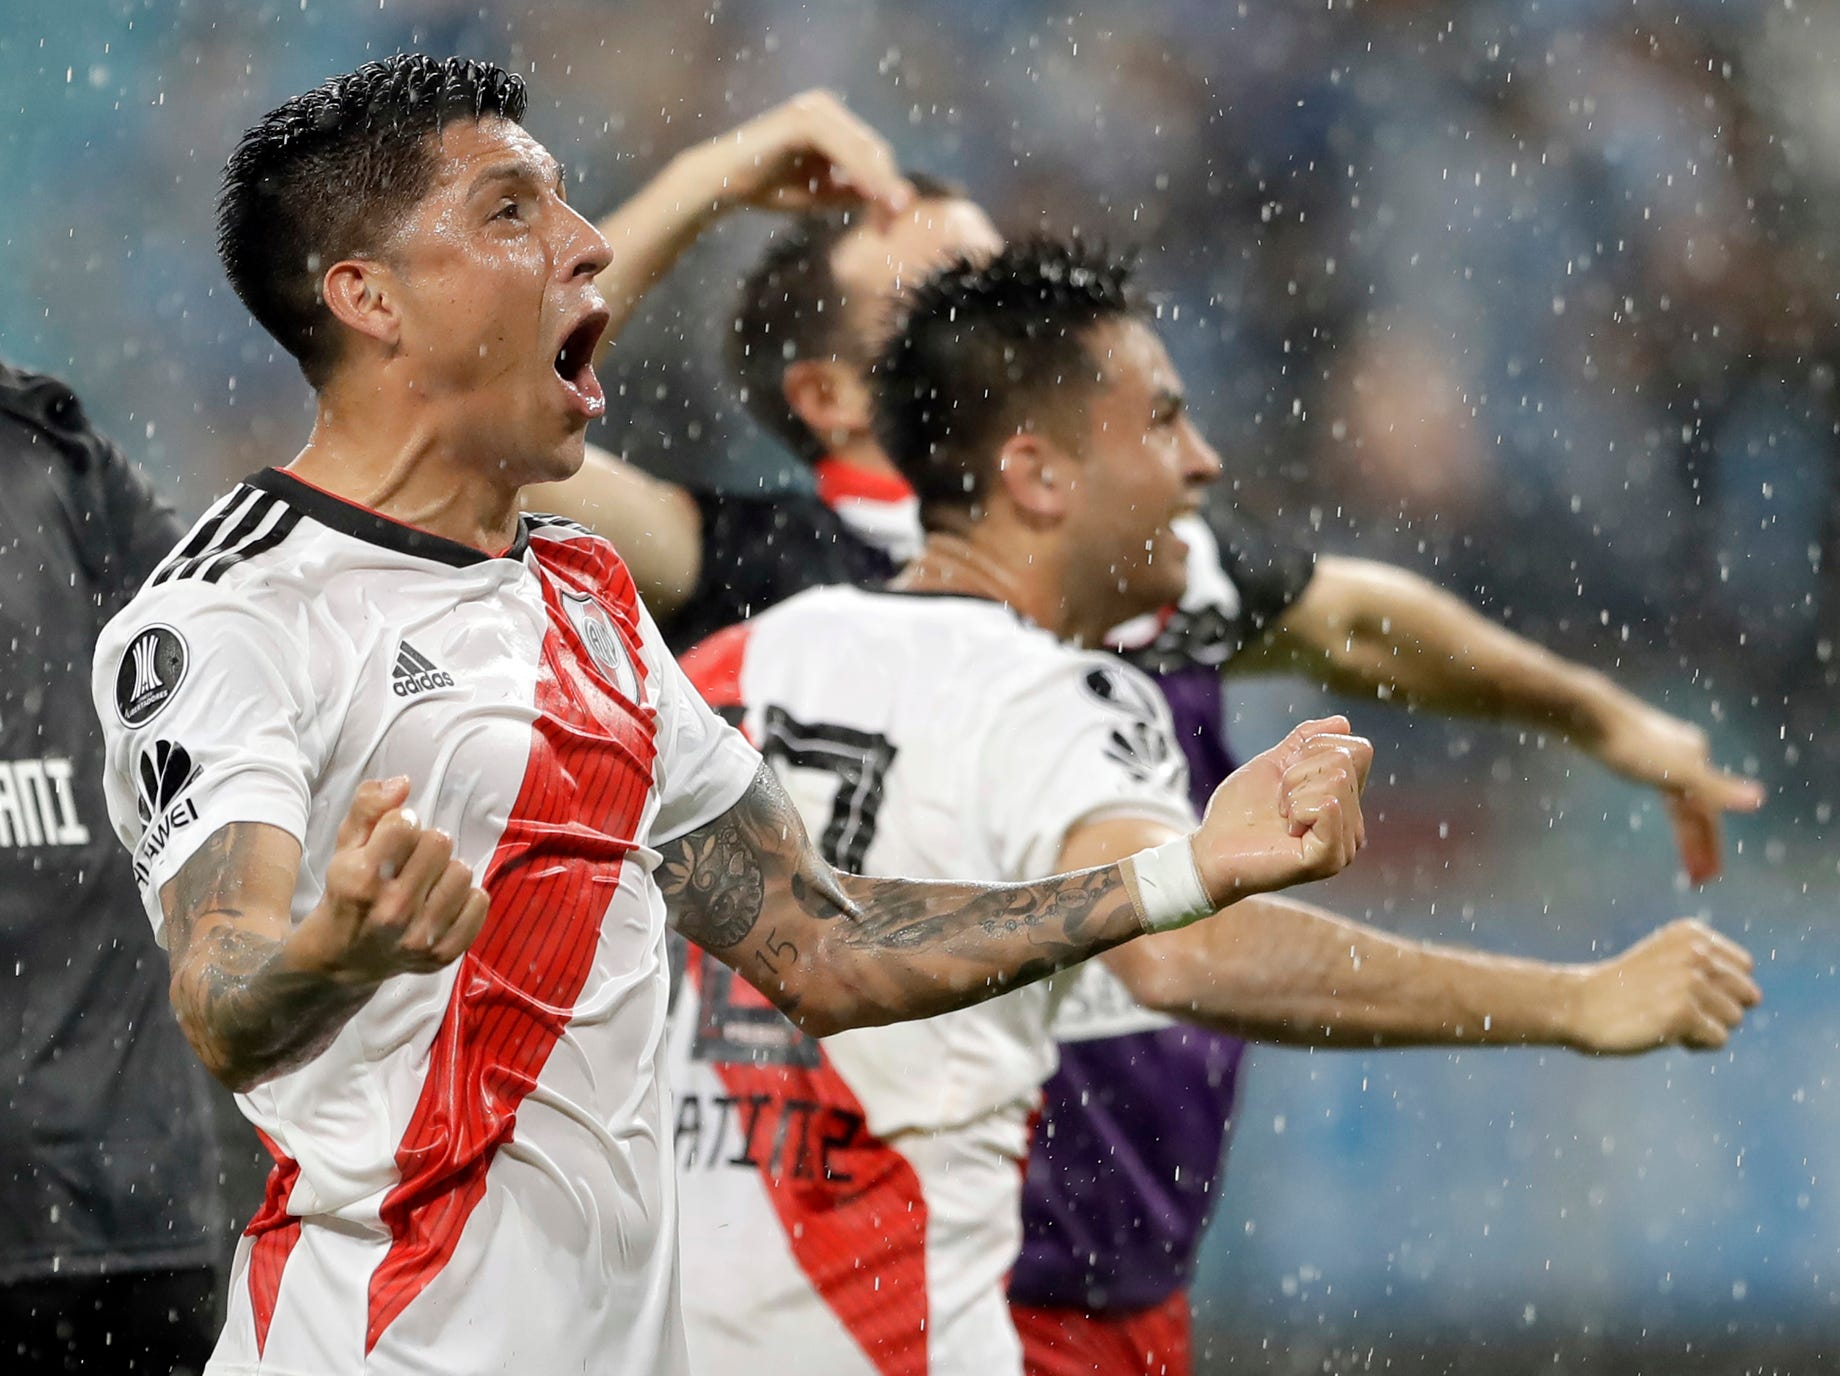 Argentina's River Plate players celebrate after defeating Brazil's Gremio during a semifinal second leg match of the Copa Libertadores in Porto Alegre, Brazil, Tuesday, Oct. 30, 2018. River advances to the finals. (AP Photo/Andre Penner)